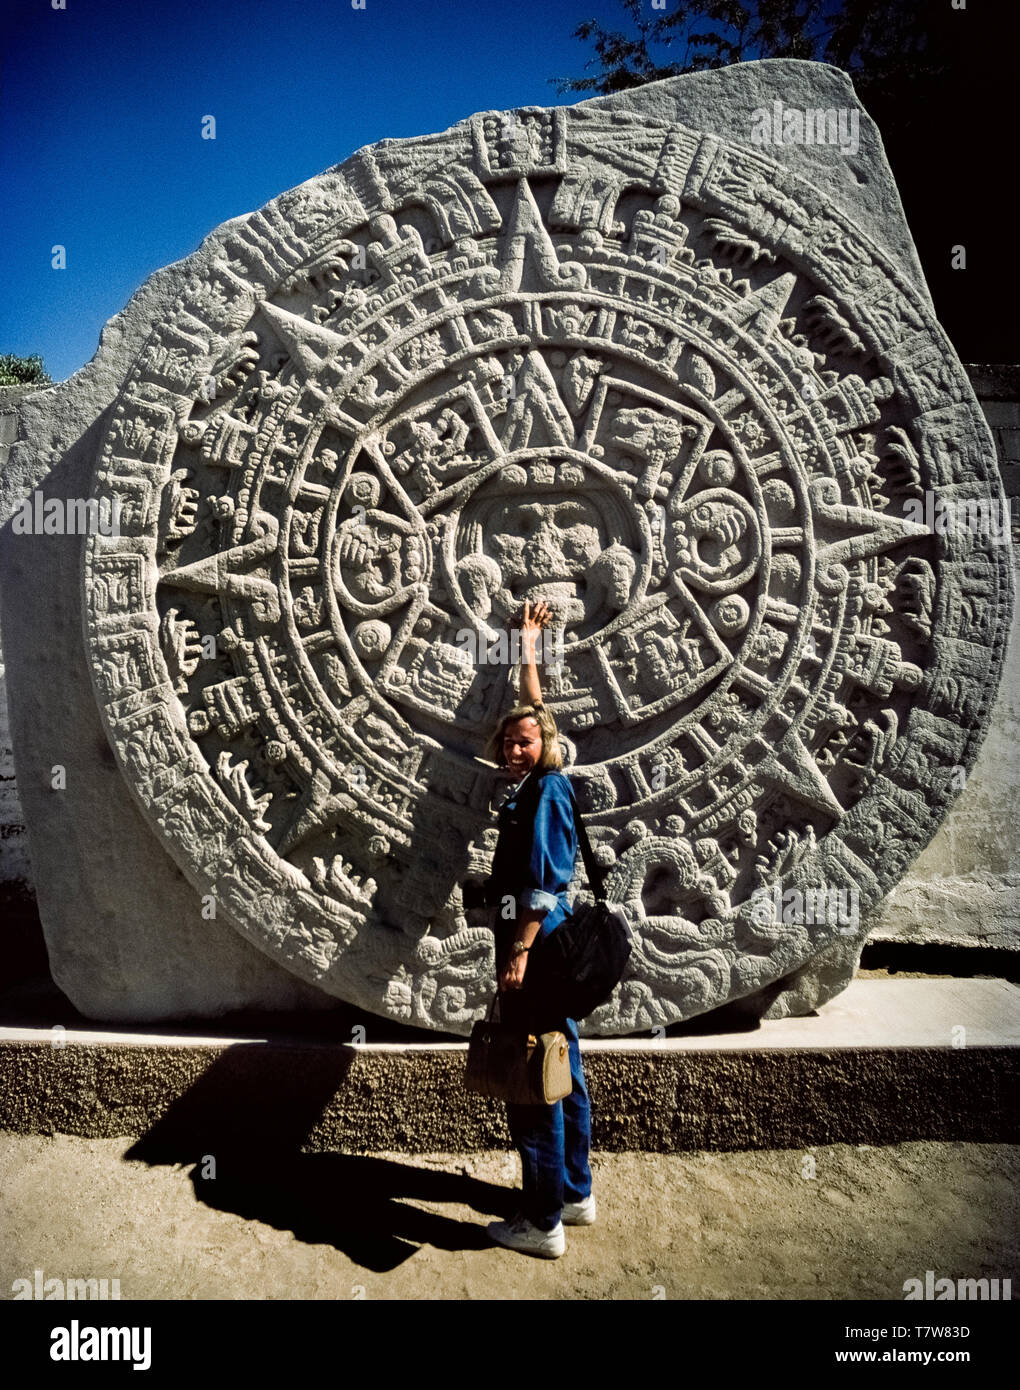 A woman tourist points to the face of the Aztec sun god that is the center of this replica of a major Mexican archaeological discovery of a massive carving known as the Aztec calendar stone on display in La Paz, the capital of Baja California Sur in Mexico, North America. Also called the Aztec sun stone, the original basalt disk was found in Mexico City in 1790. Hieroglyphics on the circular monolith relate the mythology of the re-creation of the Aztecan world in the 16th Century. - Stock Image